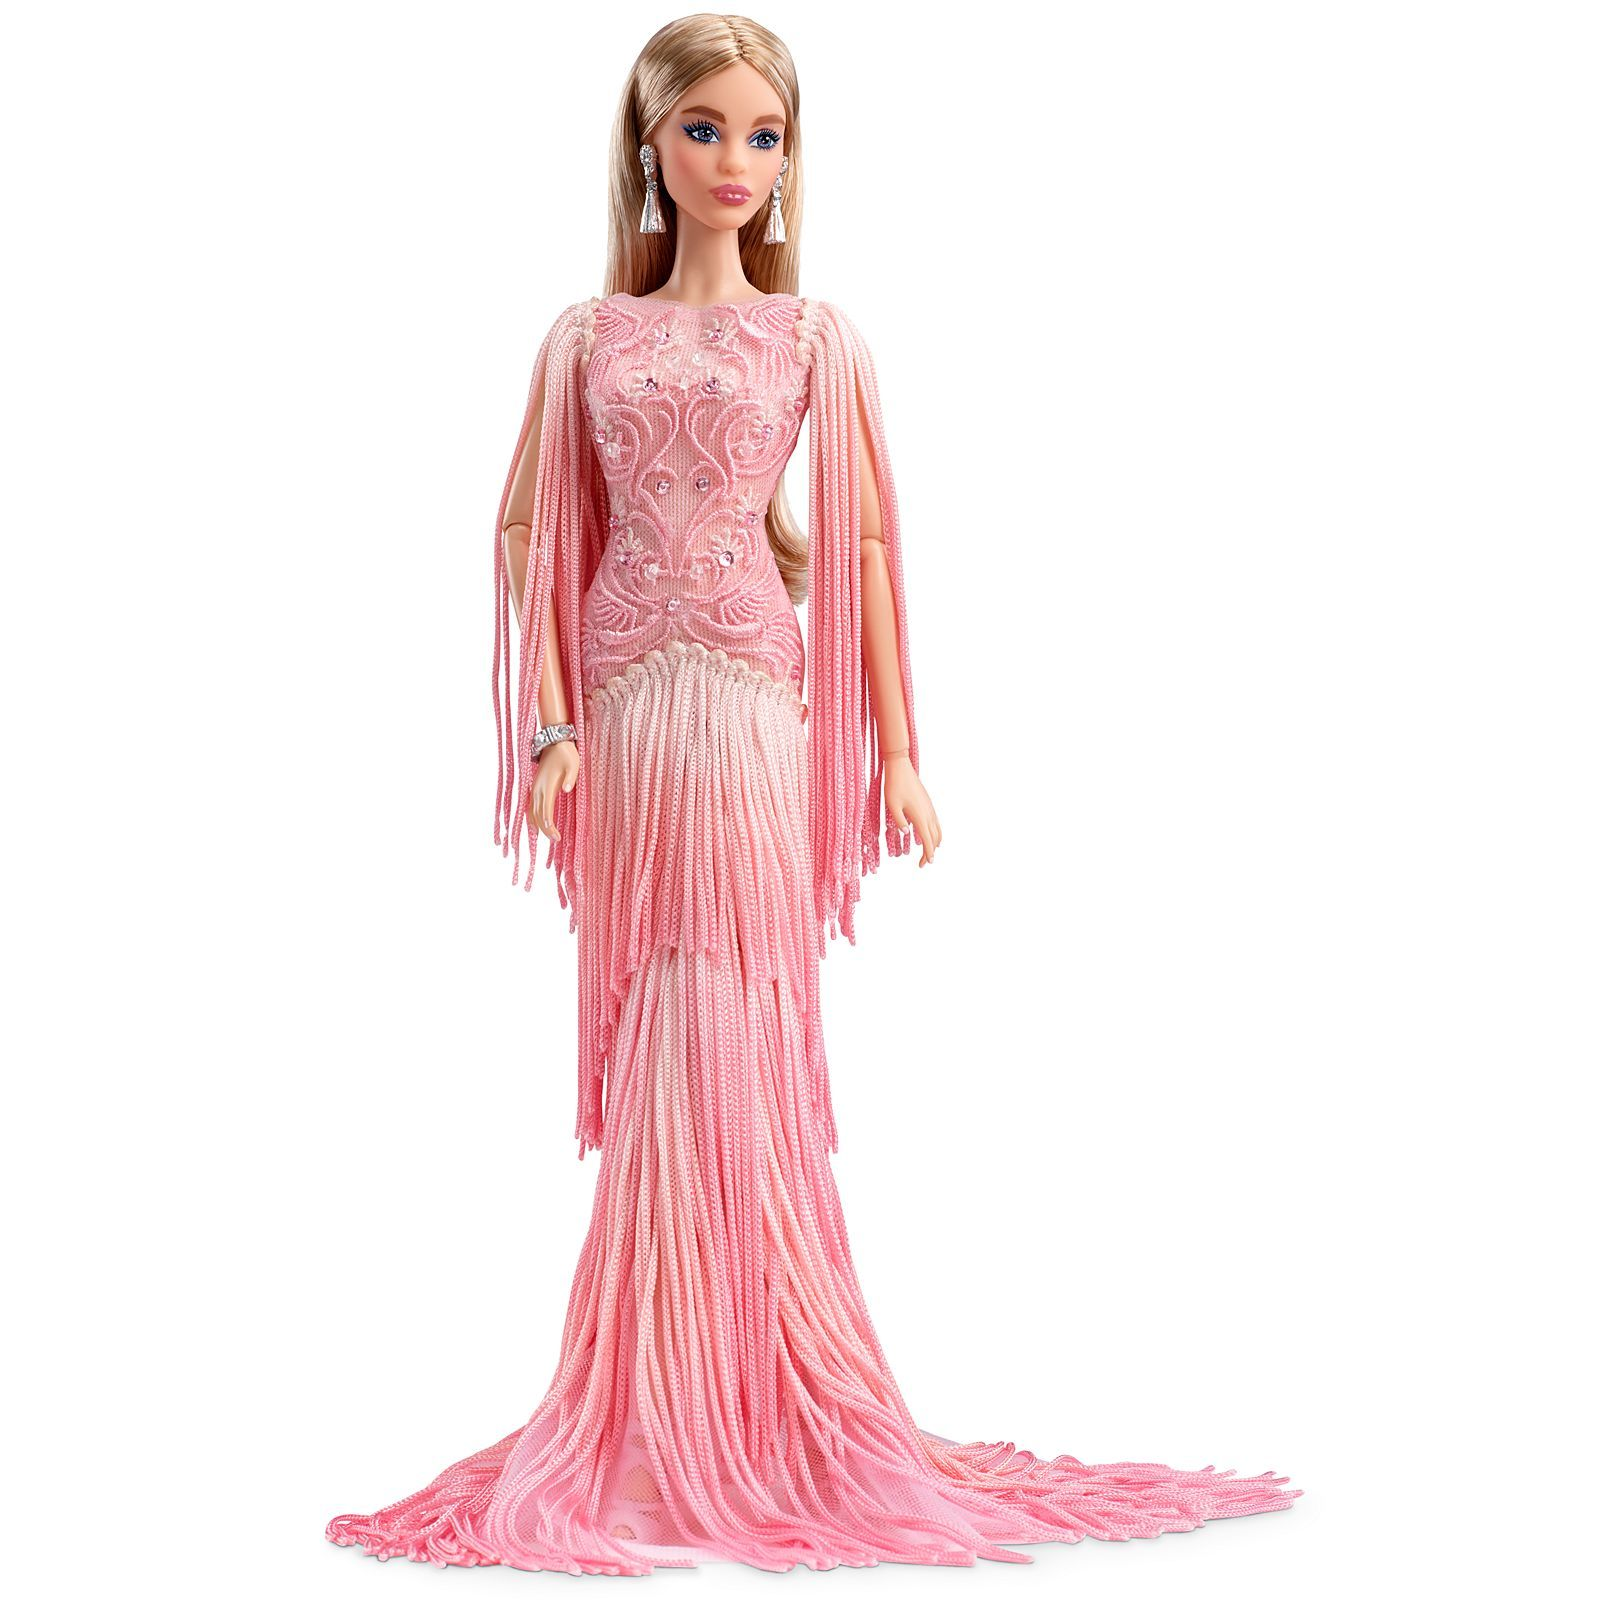 Image for ball gown series doll from mattel barbie yes ium in